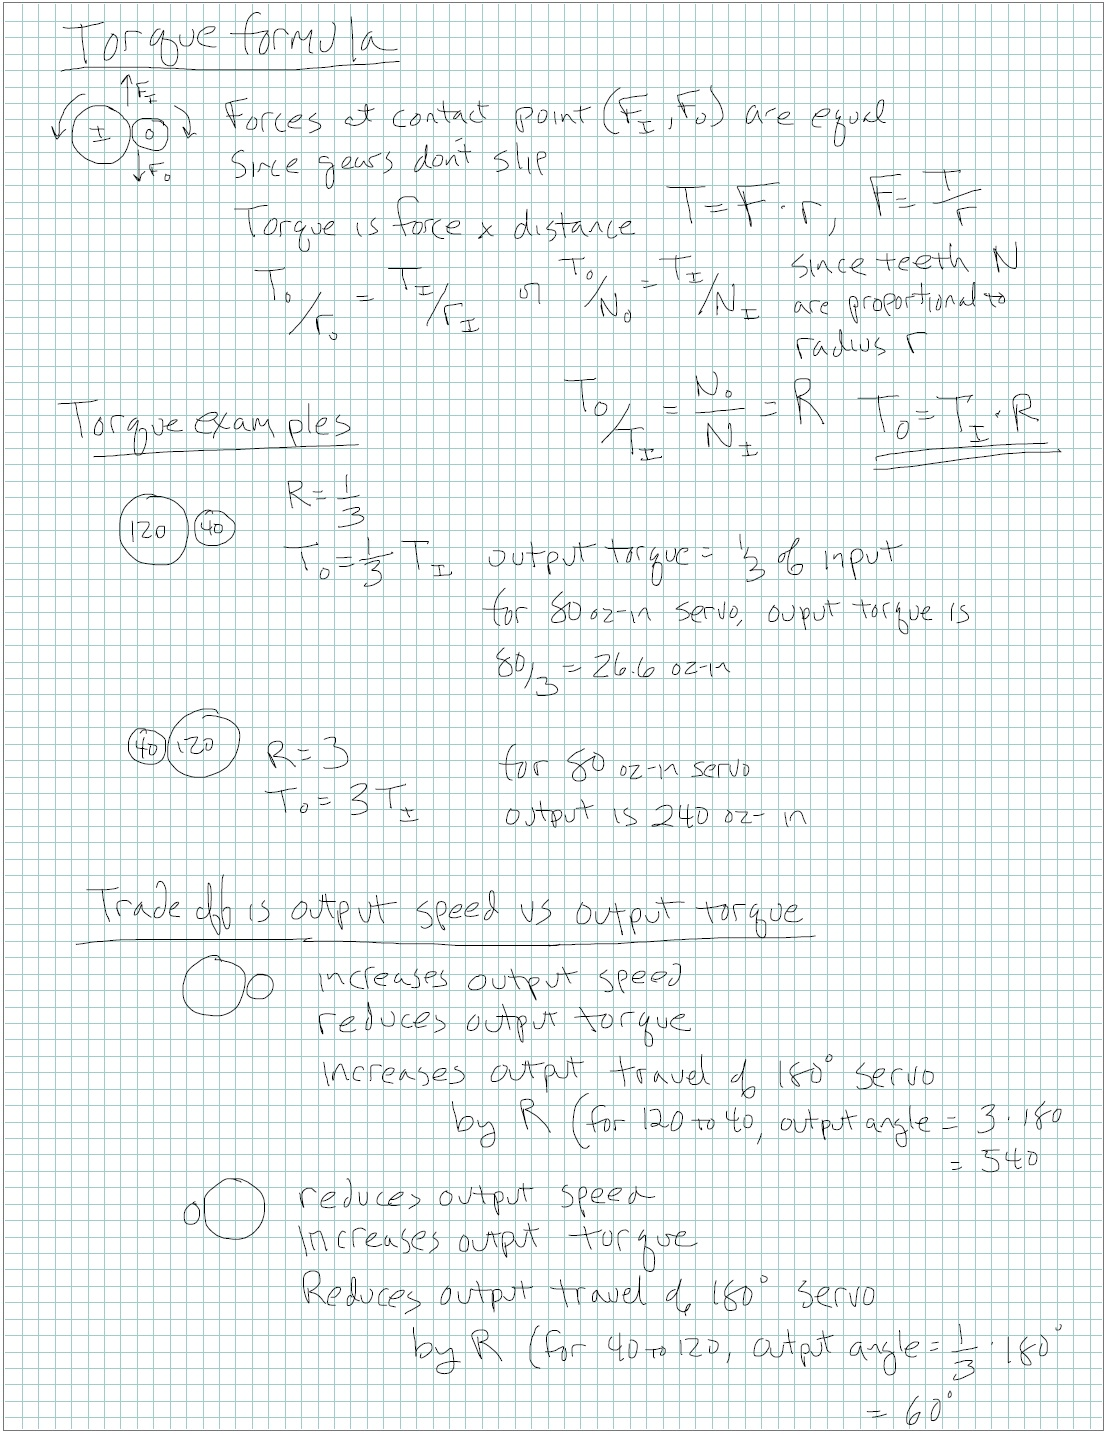 Wiring Notes Ftc Coachs Corner Robotics Diagram I Wanted To Get This Up Today So Its A Little Rough Ill Add Some Typed Later Check Back In Couple Of Days Or Post Question If Something Is